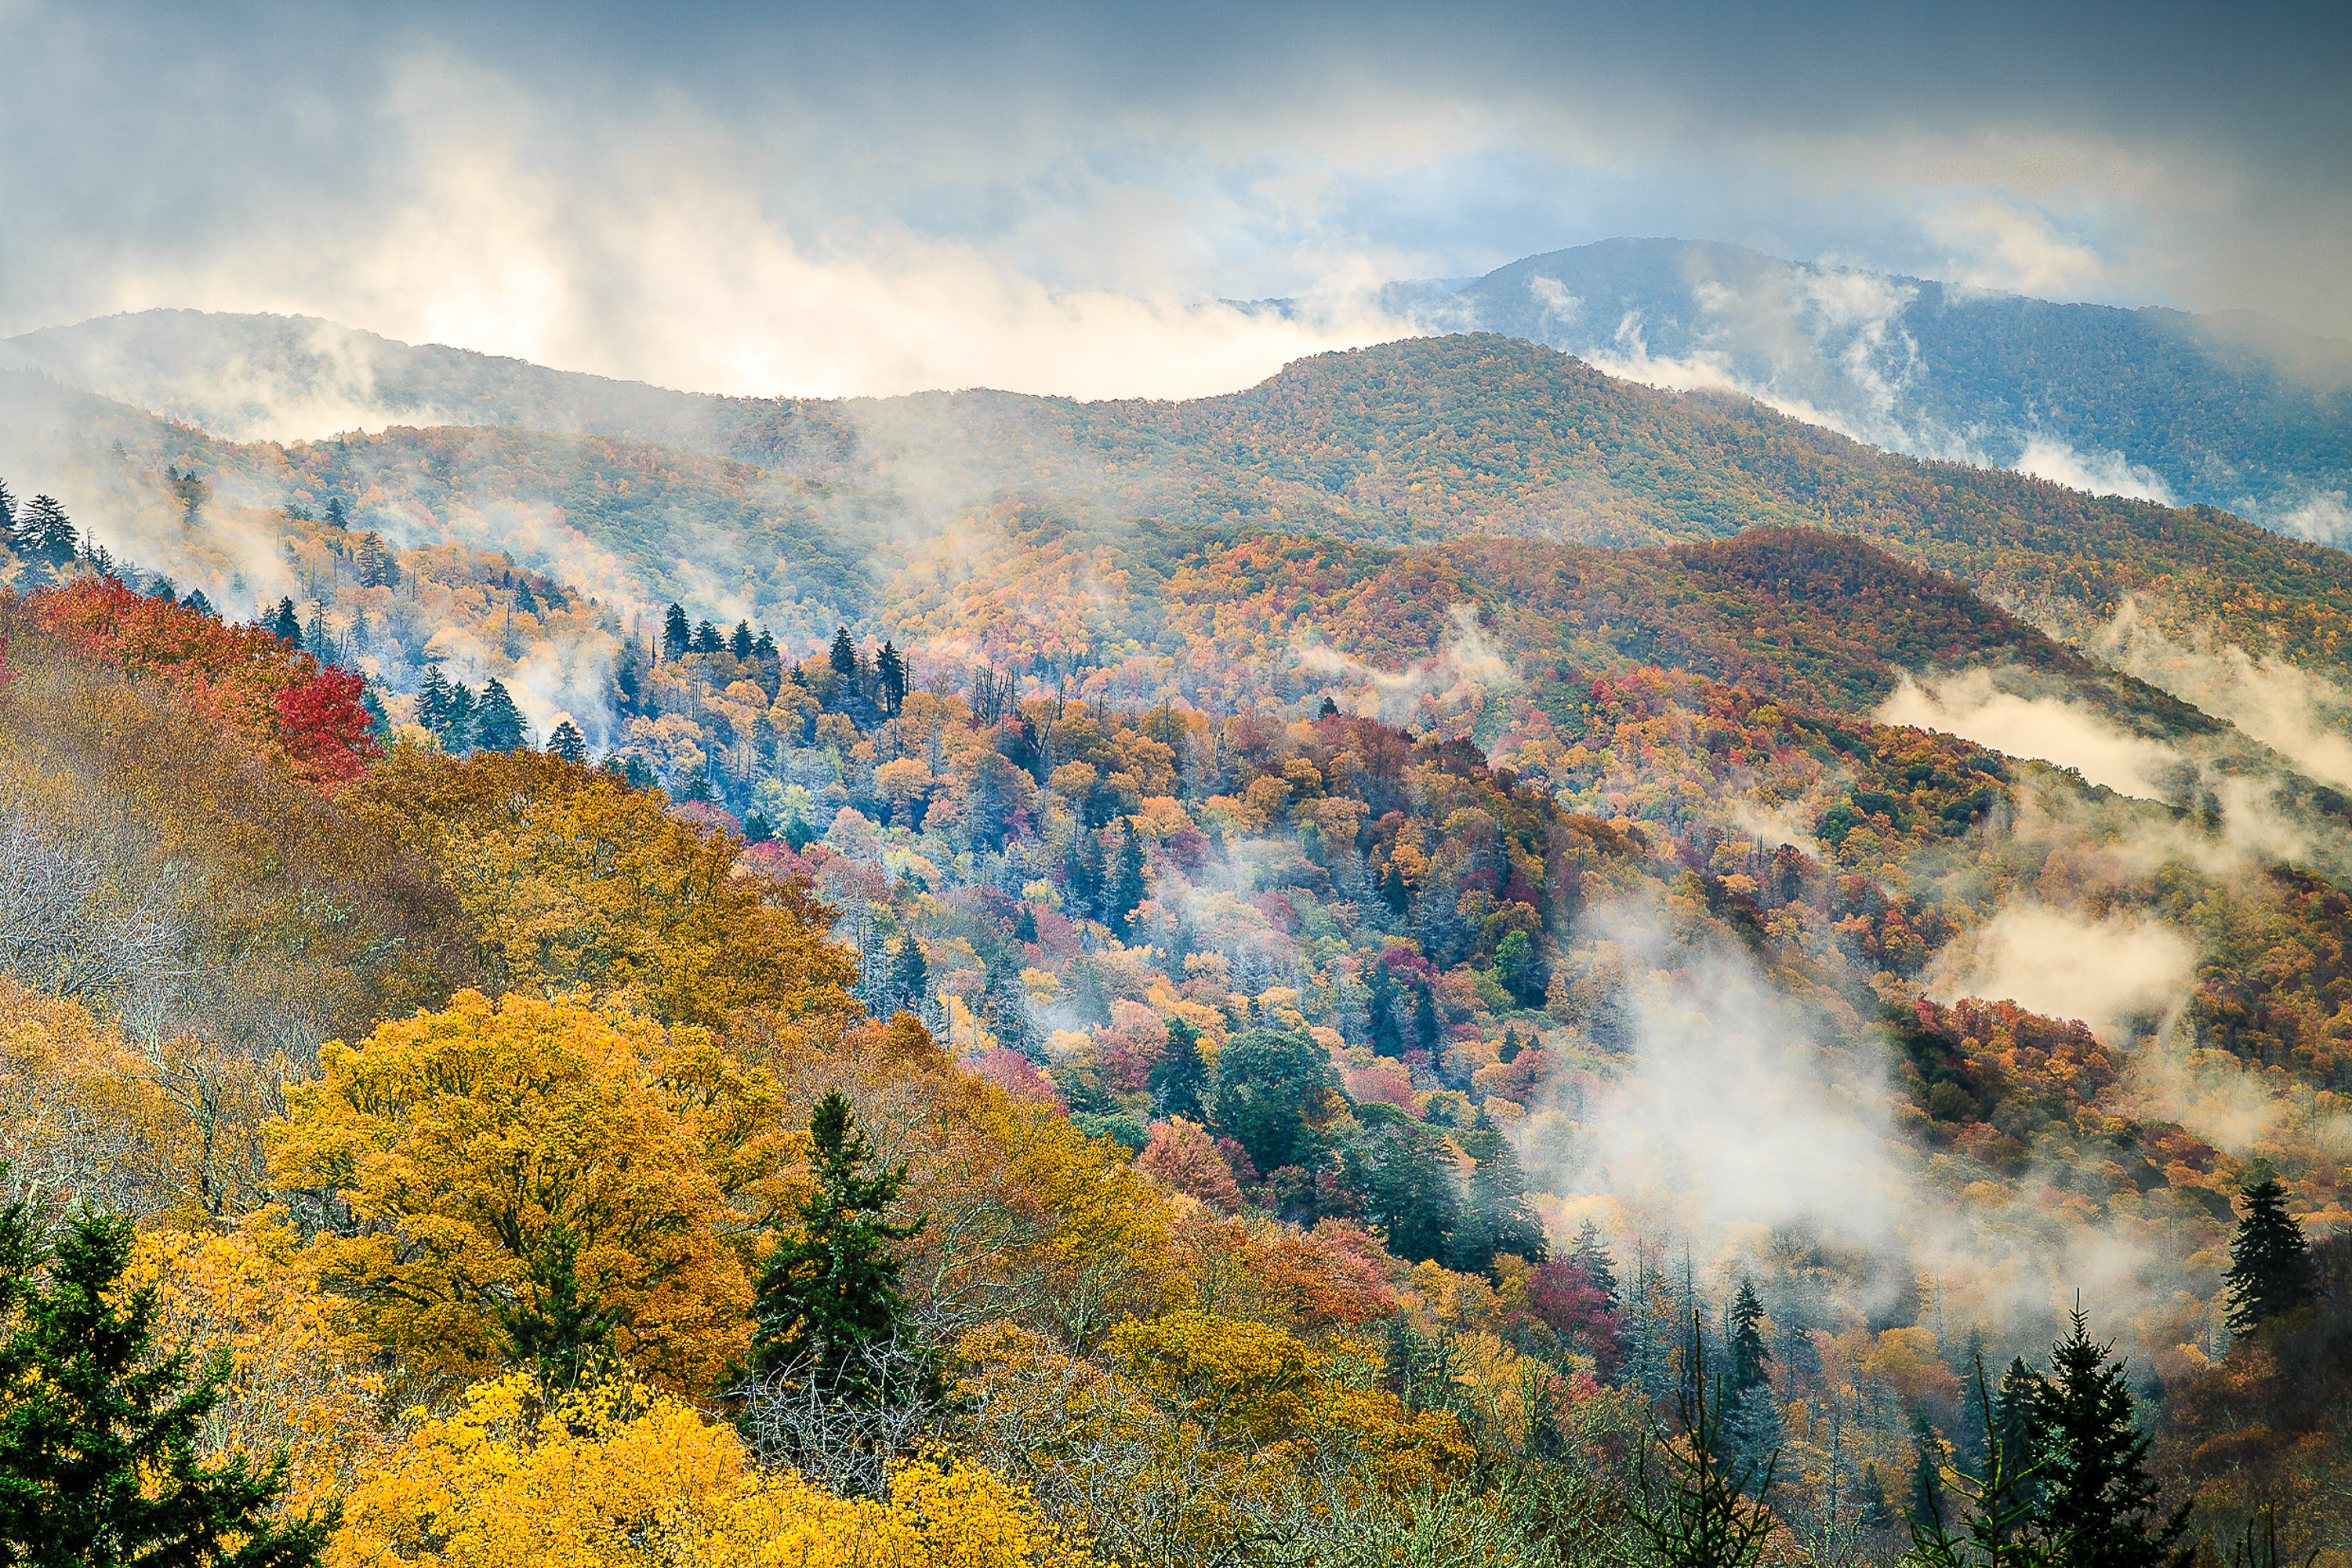 The Newfound Gap in the Smoky Mountains National Park - National Parks to Visit in Spring